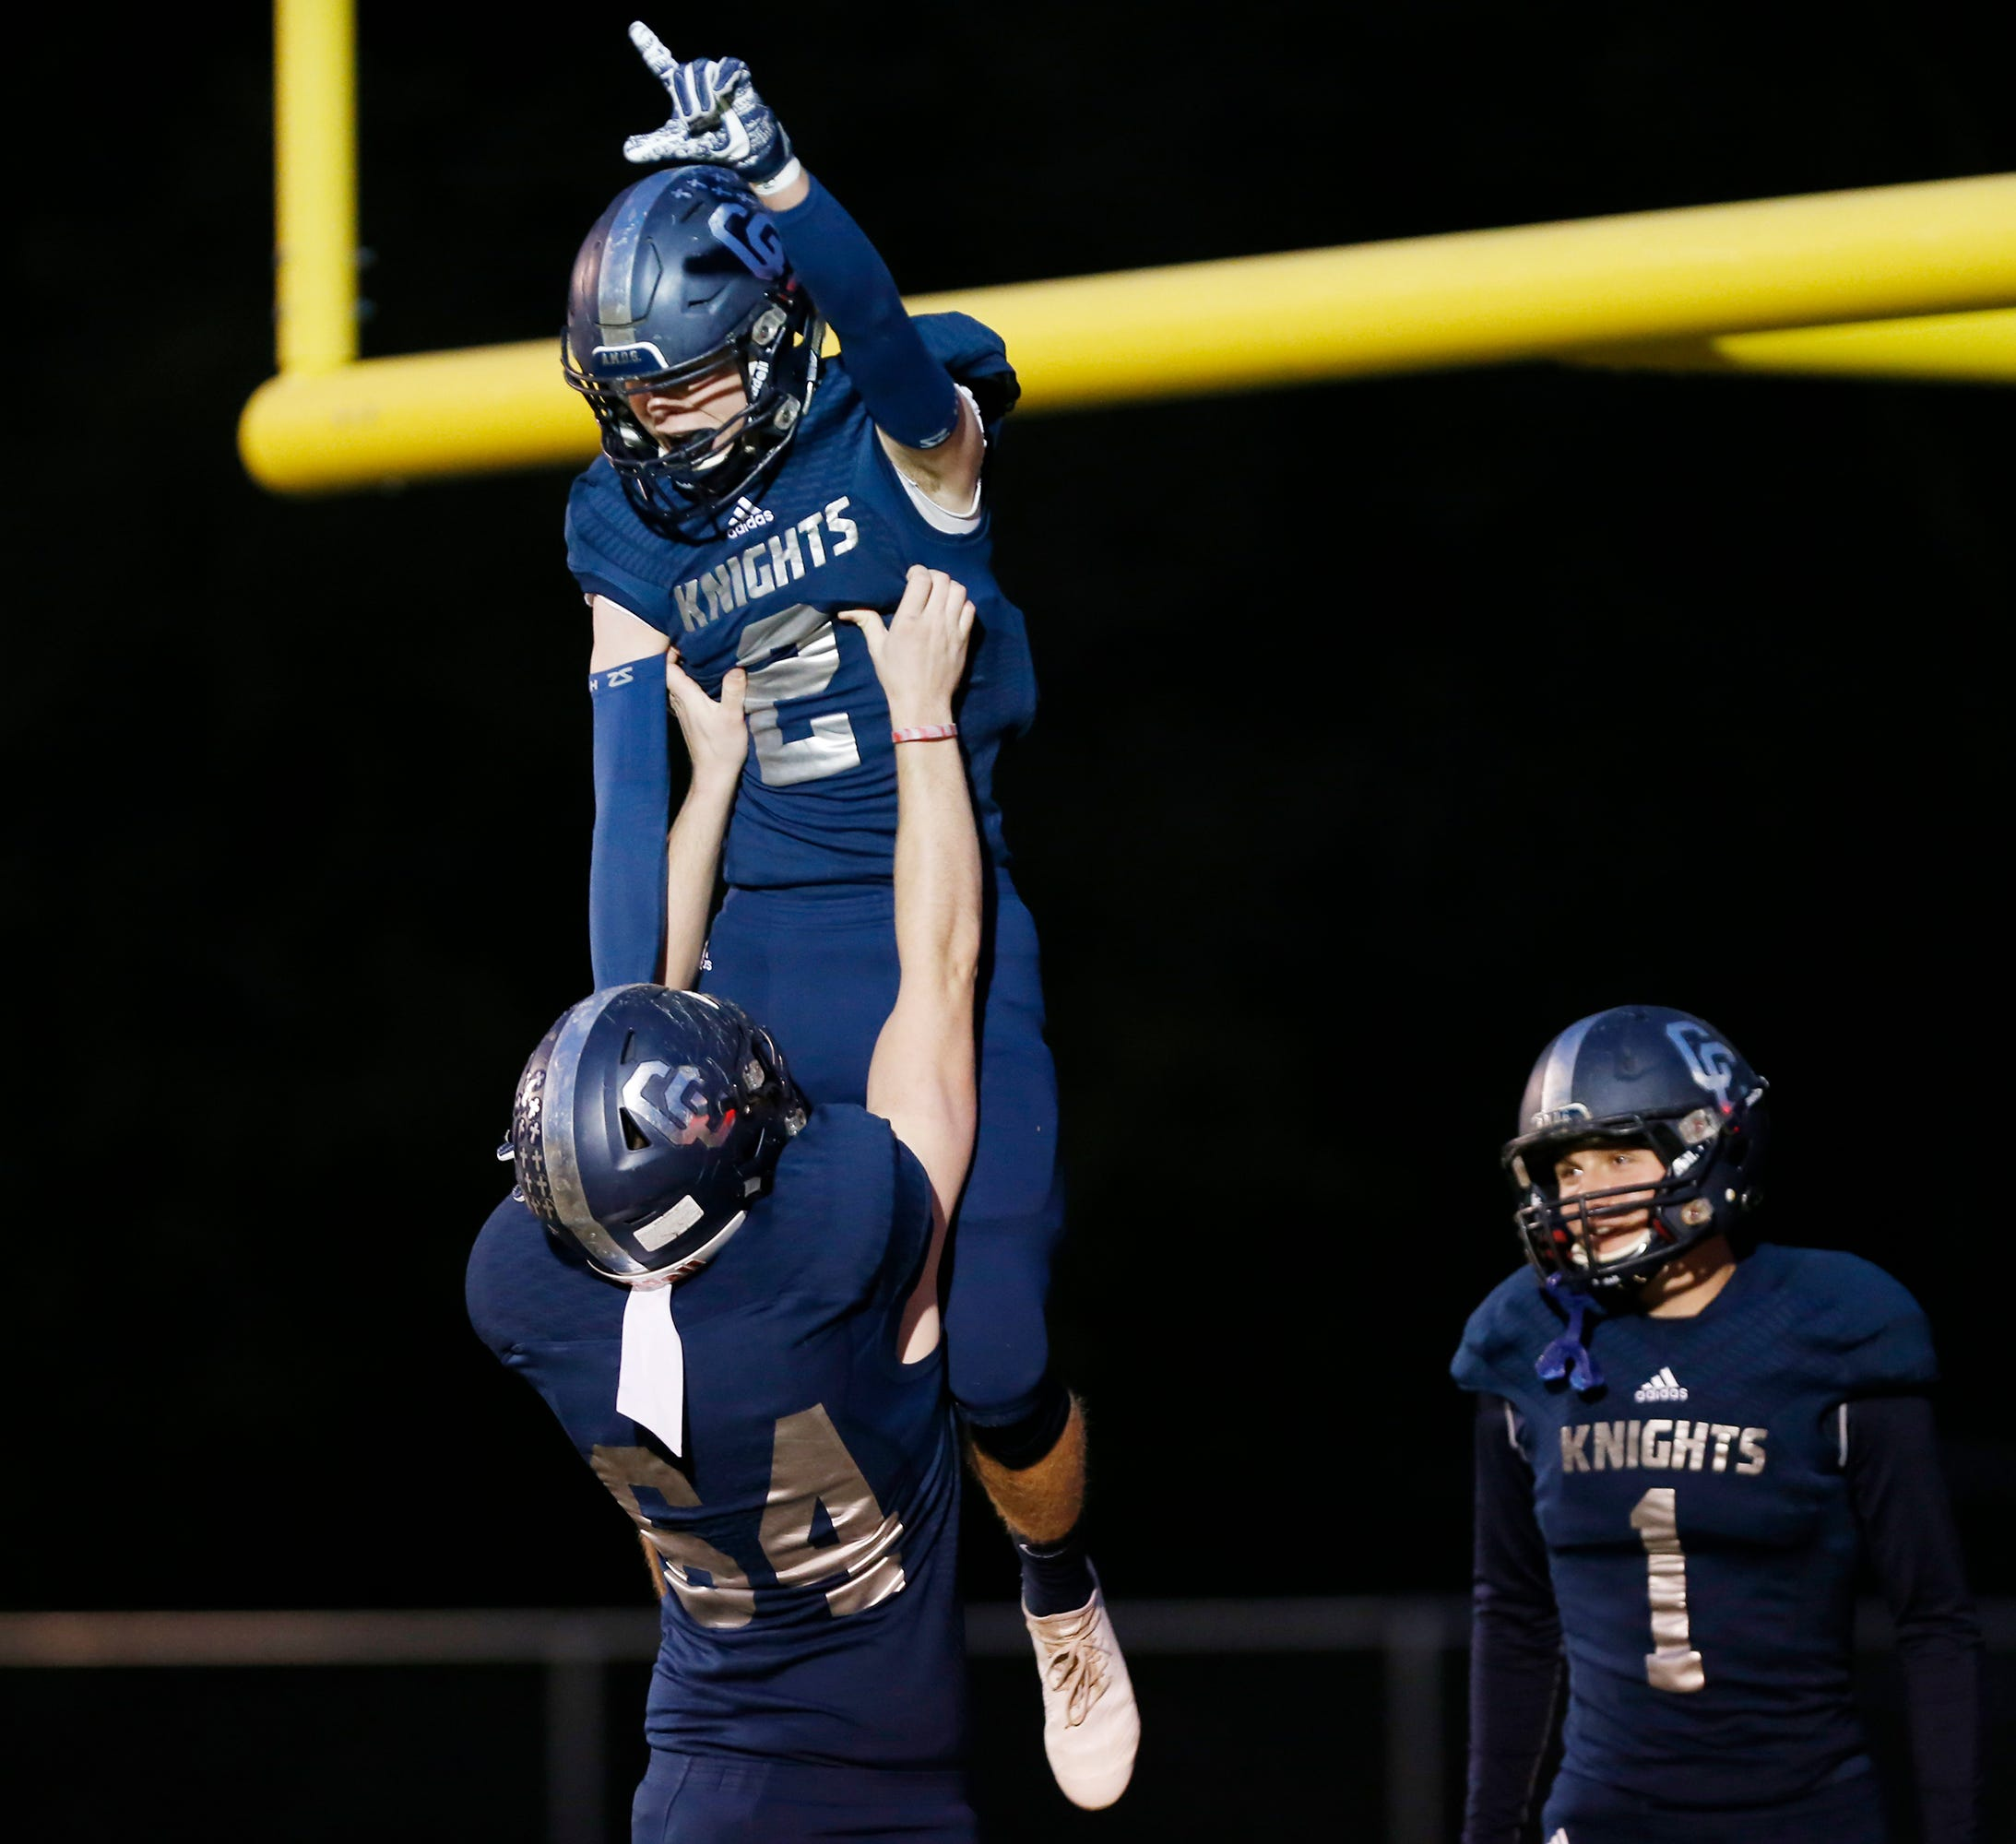 Scott Lovell of Central Catholic is lifted into the air by teammate Michael Beardmore after his touchdown reception at 8:03 in the first quarter against North White in the football sectional Friday, October 19, 2018, in Lafayette.